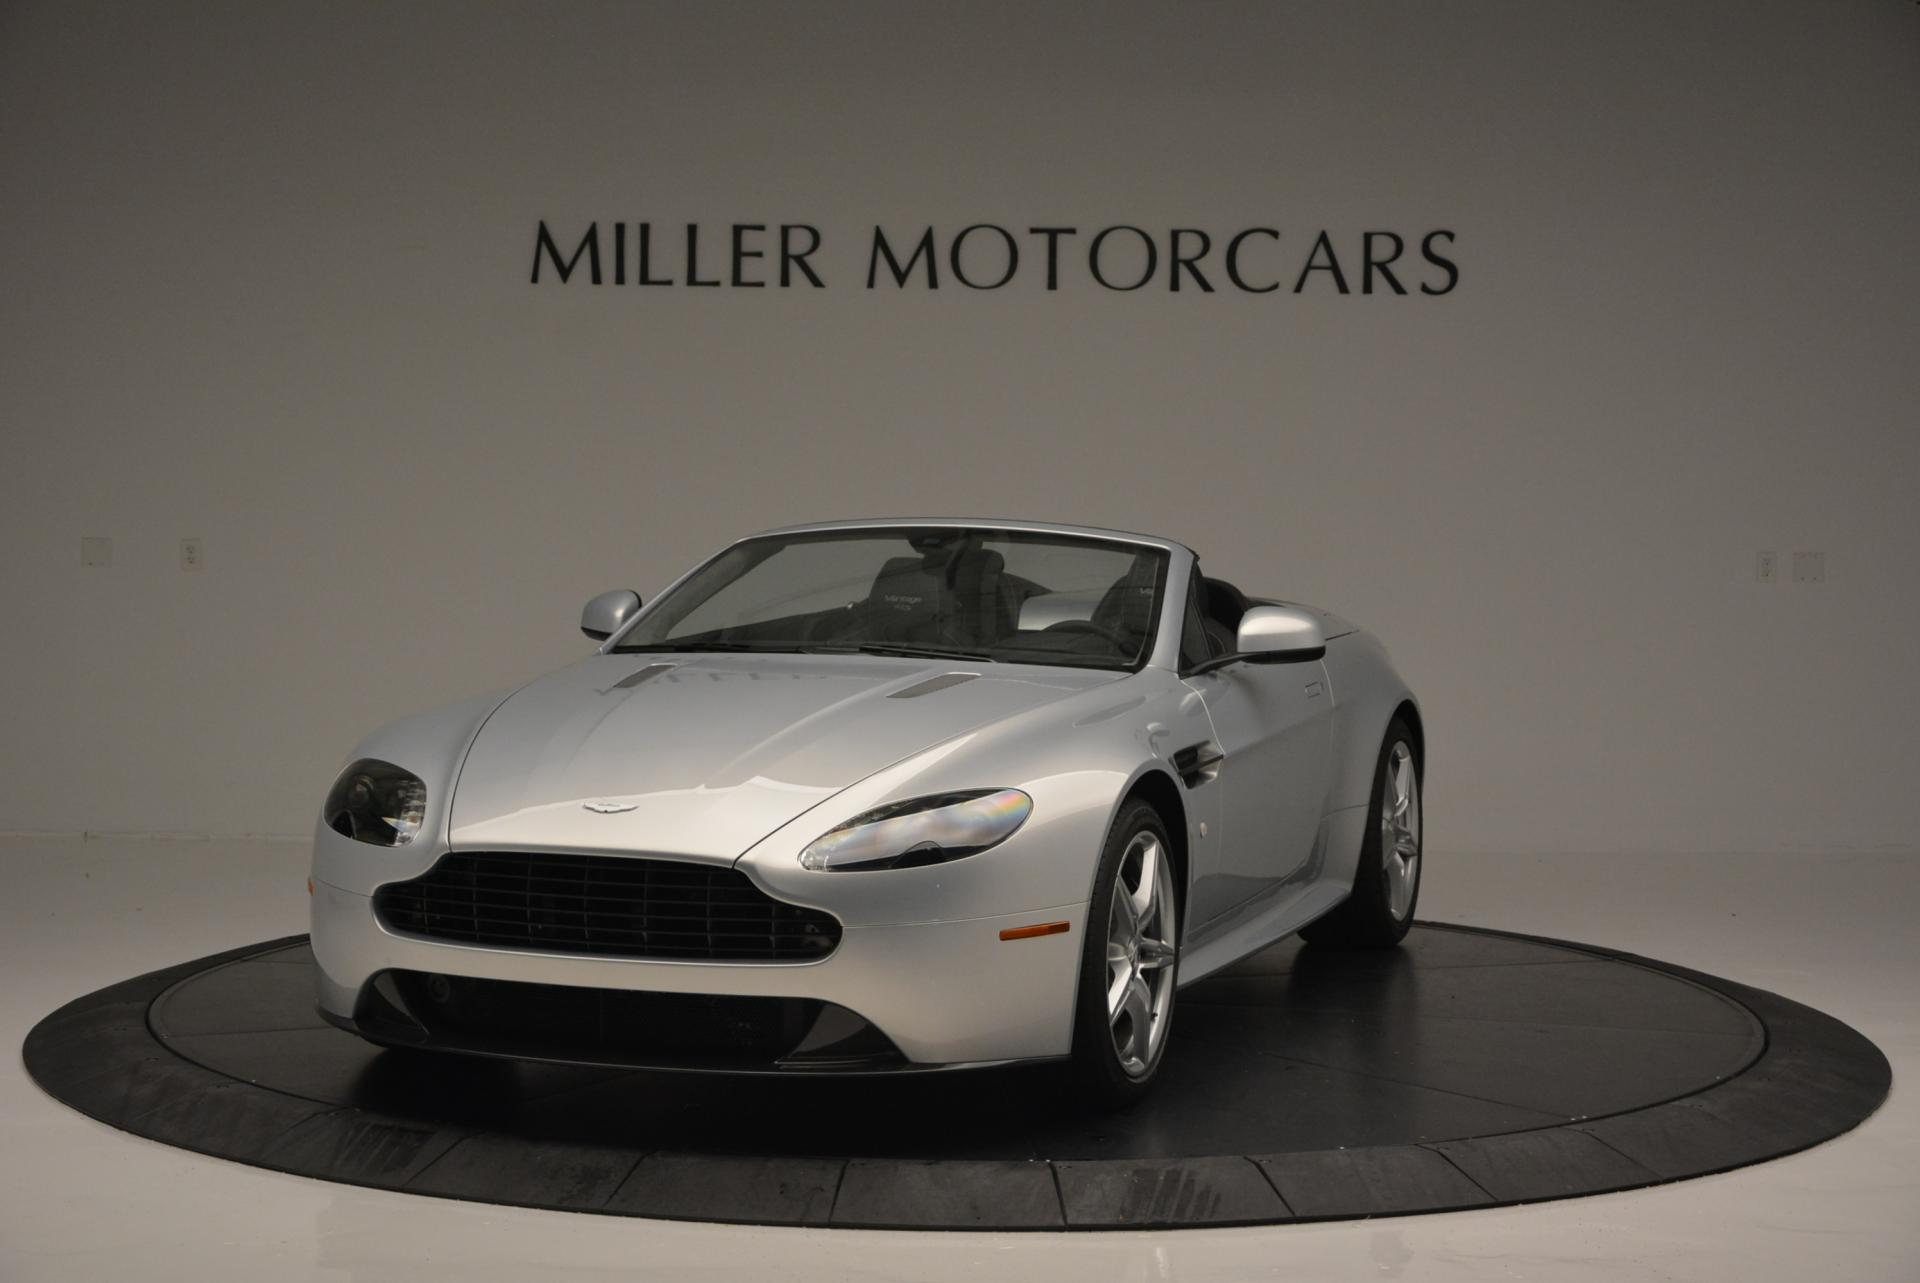 New 2016 Aston Martin V8 Vantage GTS Roadster for sale Sold at Alfa Romeo of Greenwich in Greenwich CT 06830 1